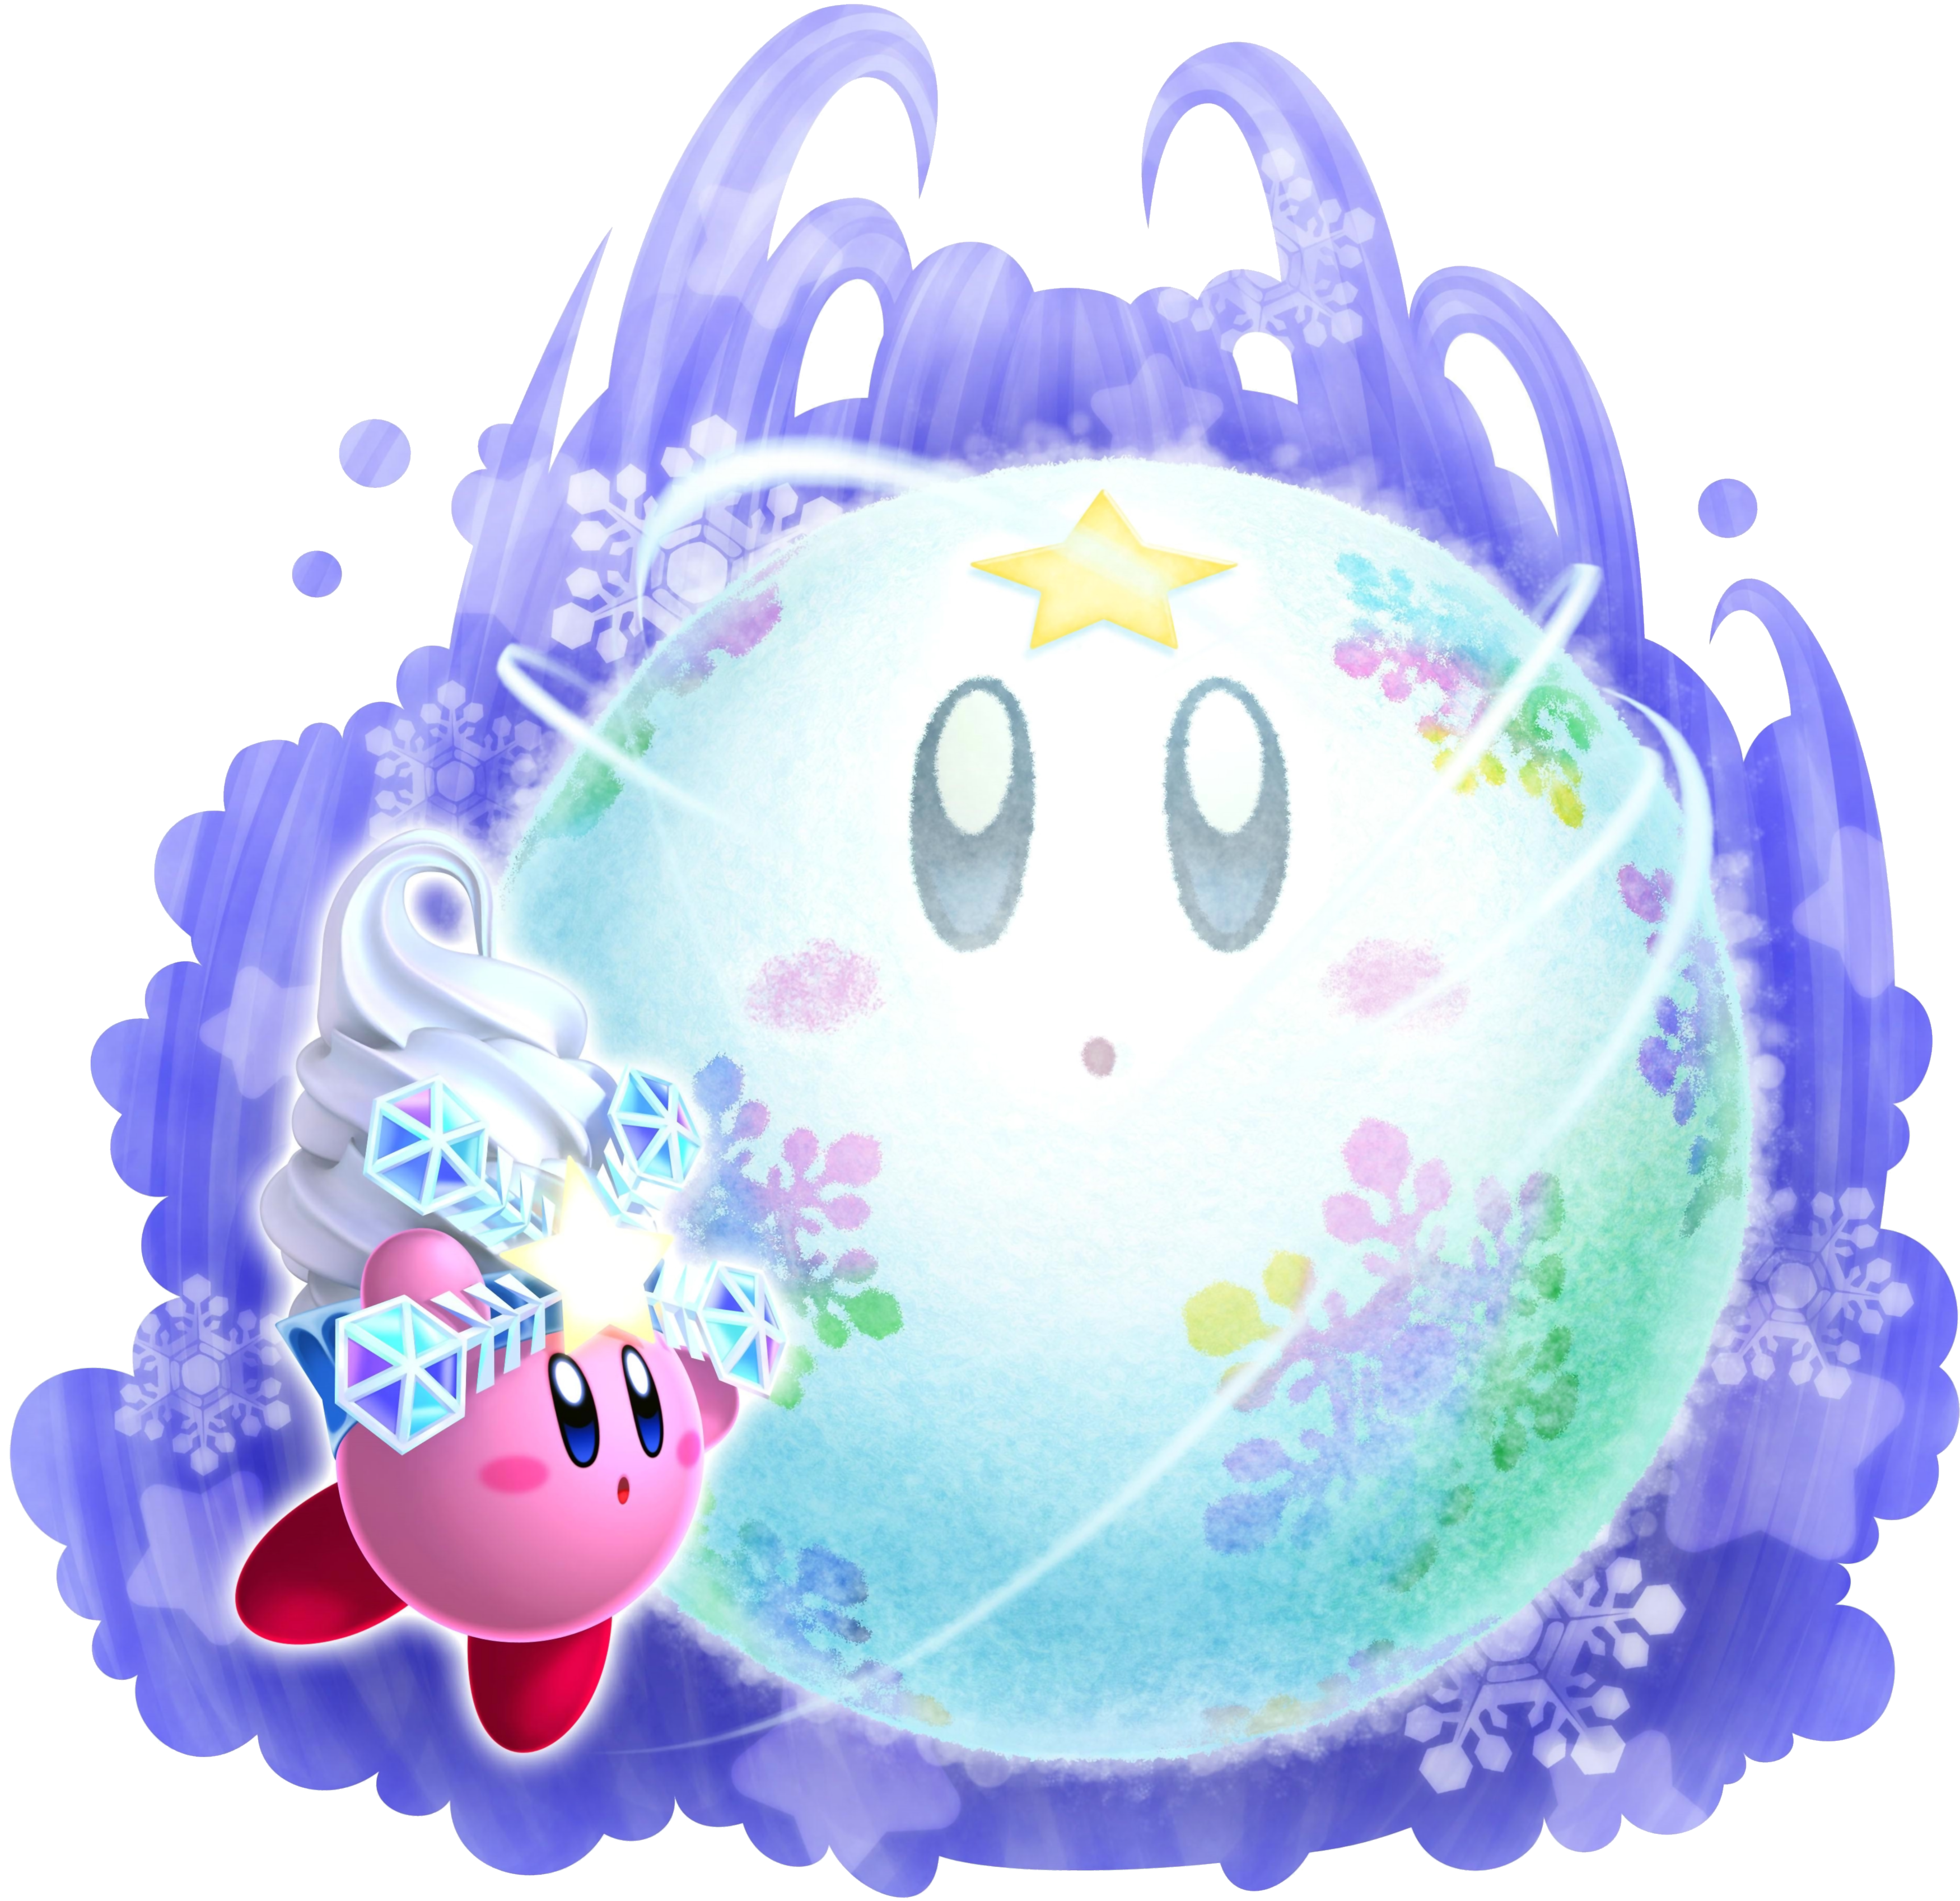 Snowball clipart giant snowball. Snow bowl kirby wiki